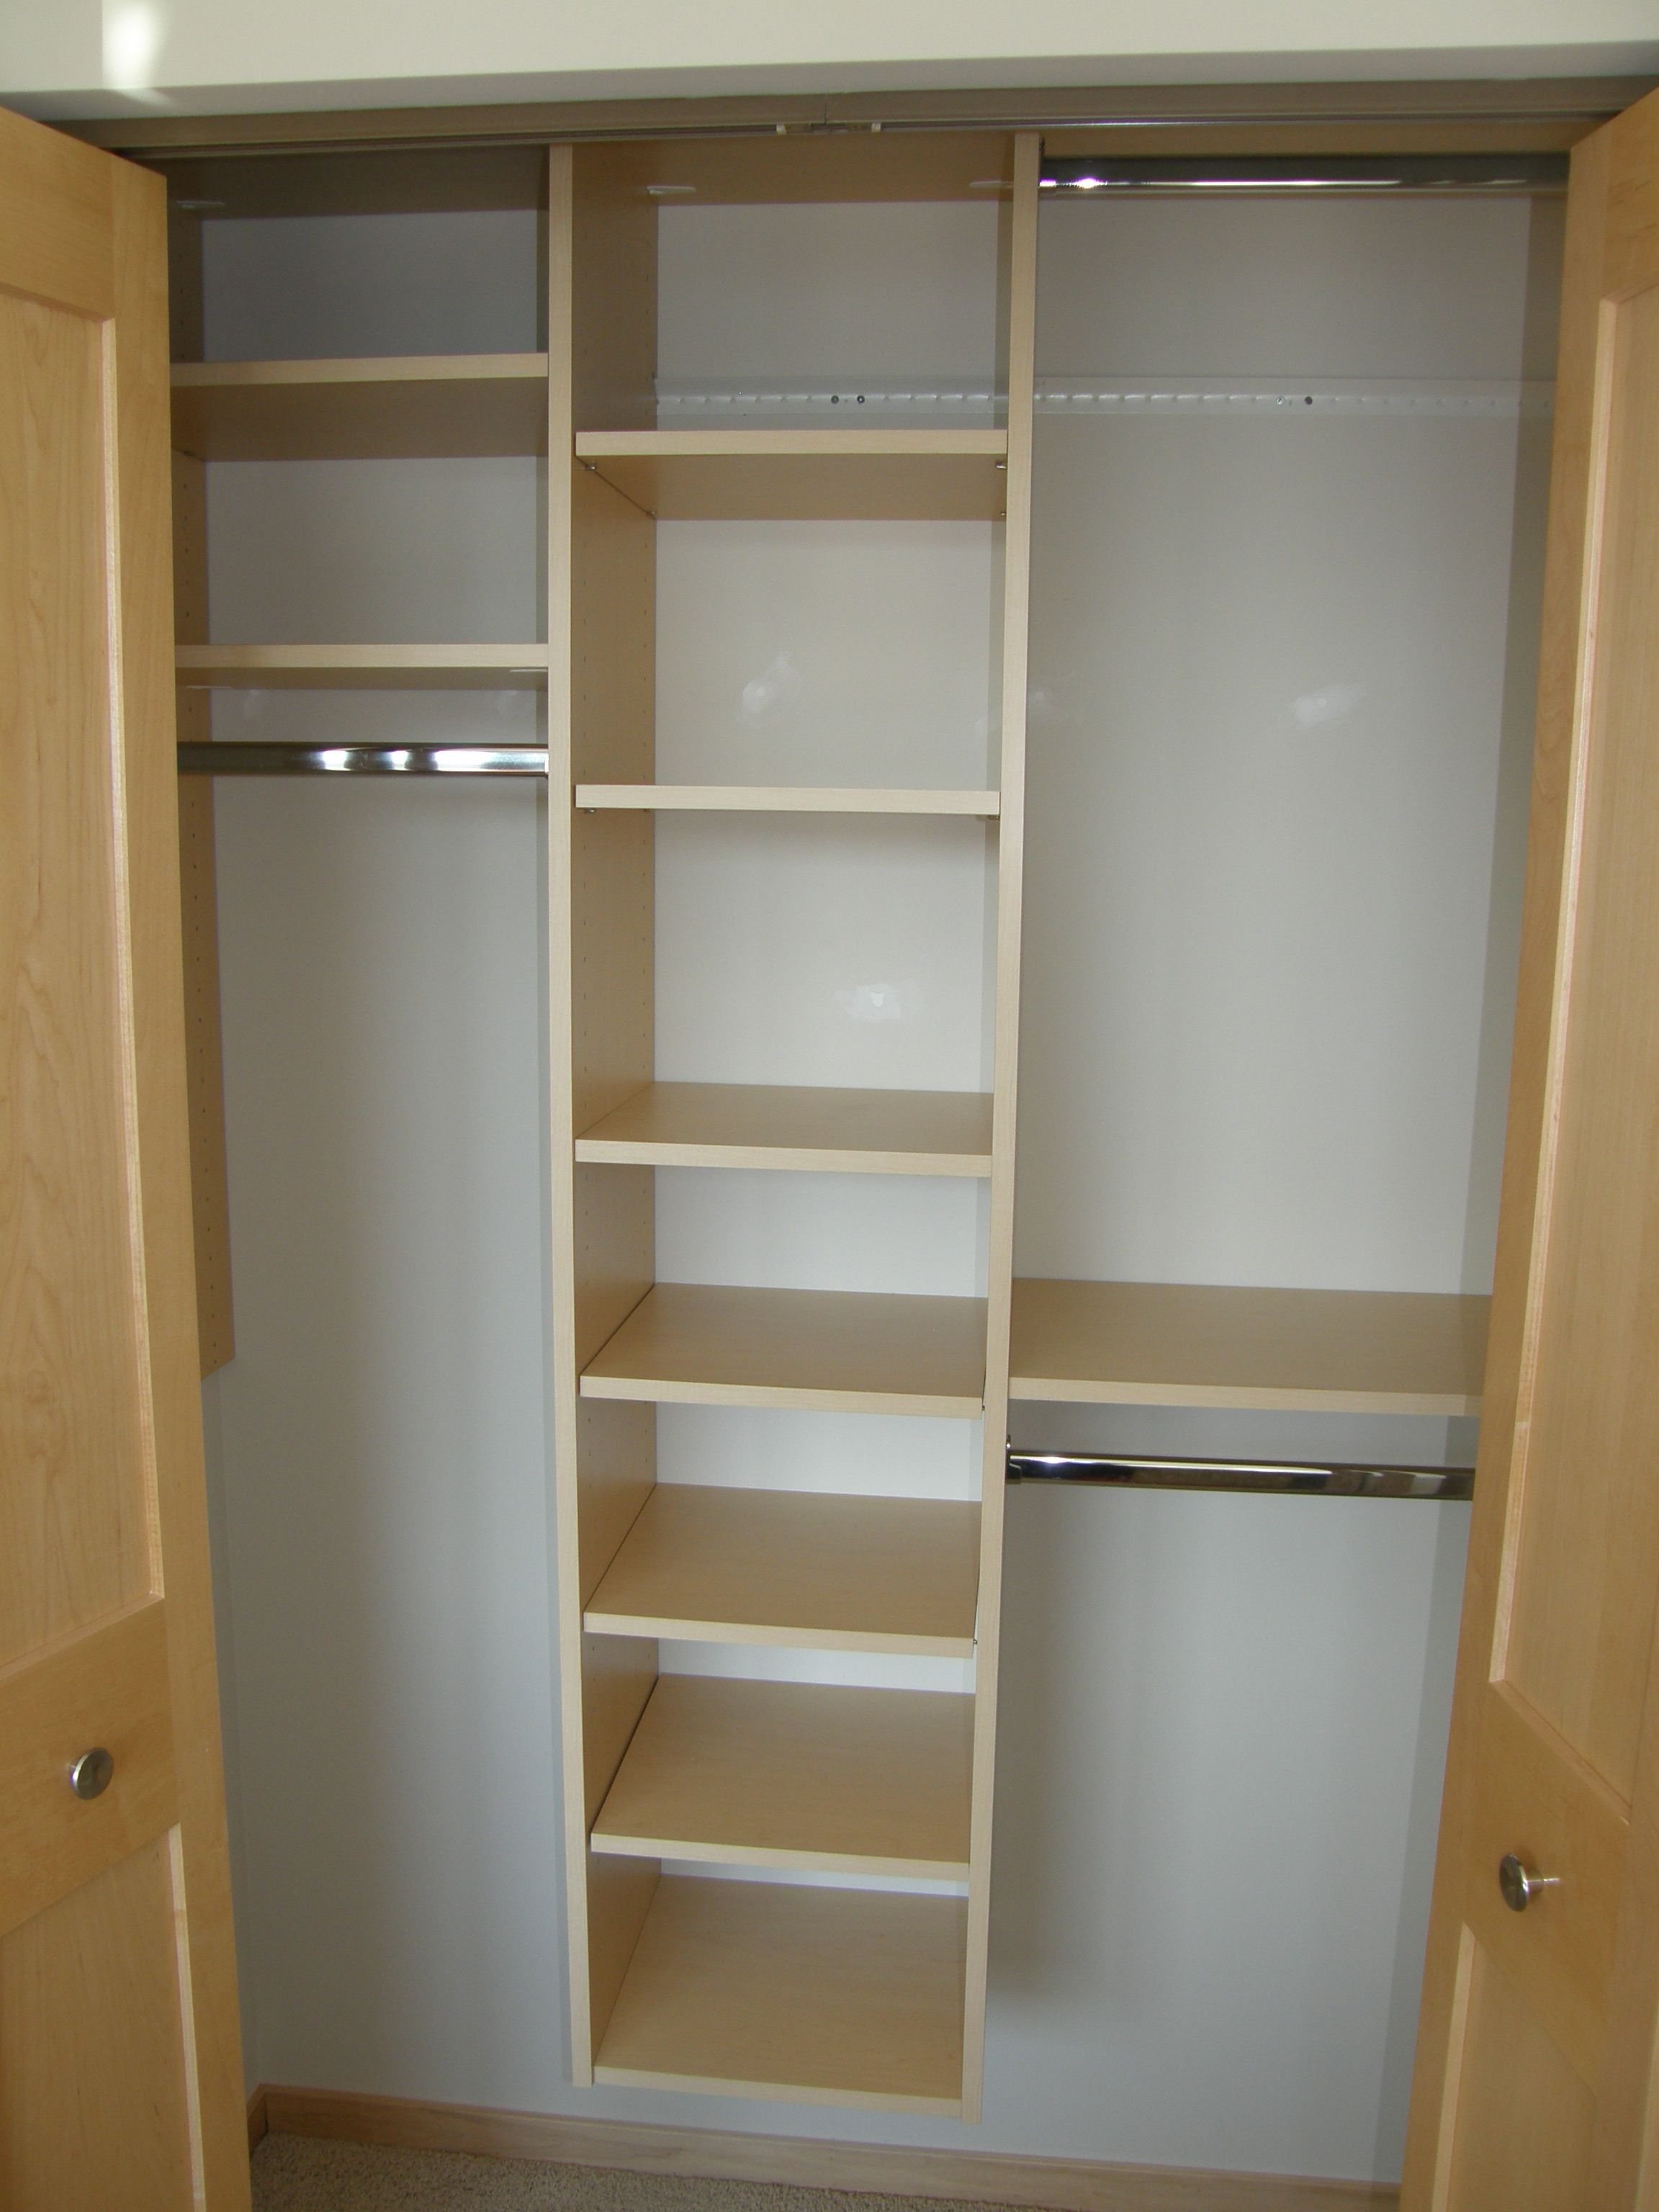 Delicieux Reach In Closet Organization   Incorporate Adustable Shelving Into Your Custom  Closet Organization Design. Adjustable Shelves Make It Easy To Change Up  Your ...